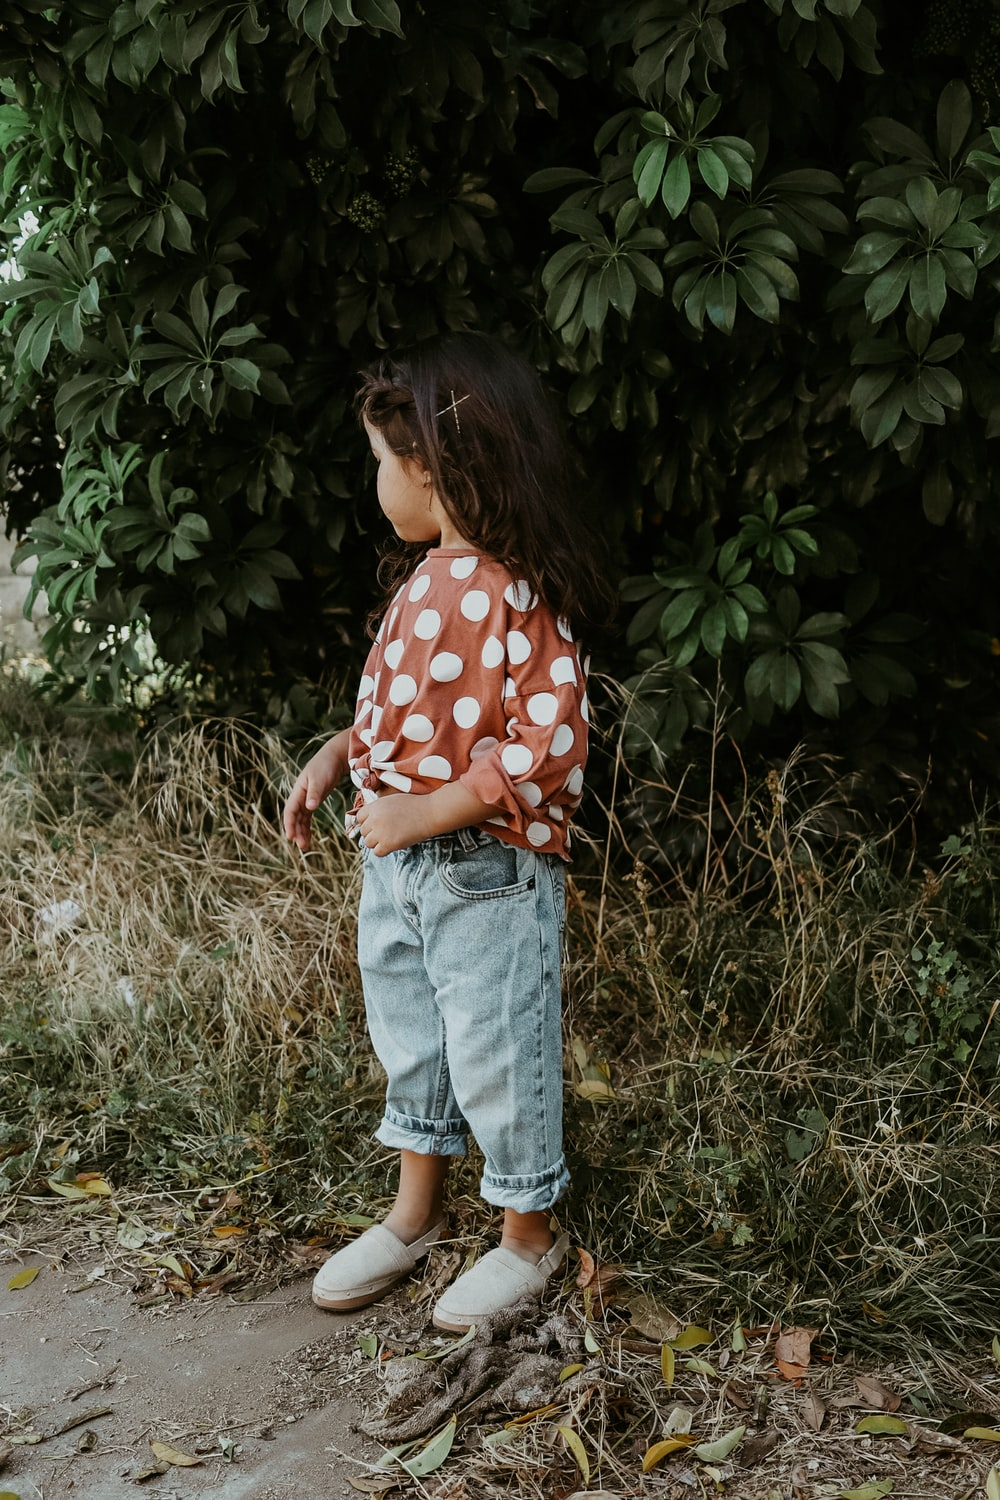 girl in red and white polka dot shirt